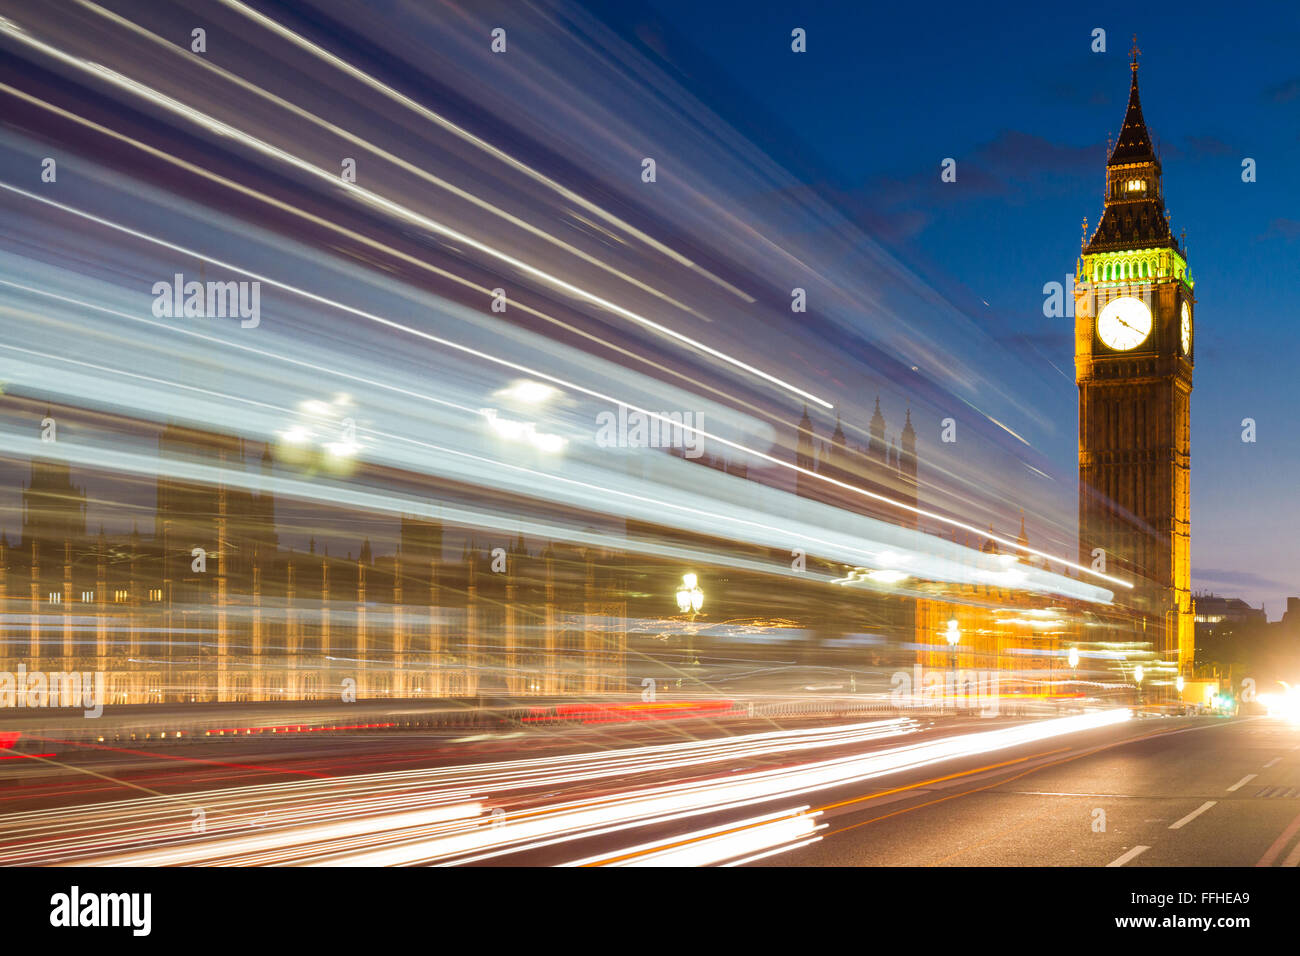 Verkehrslinien vor Big Ben, London, England Stockbild